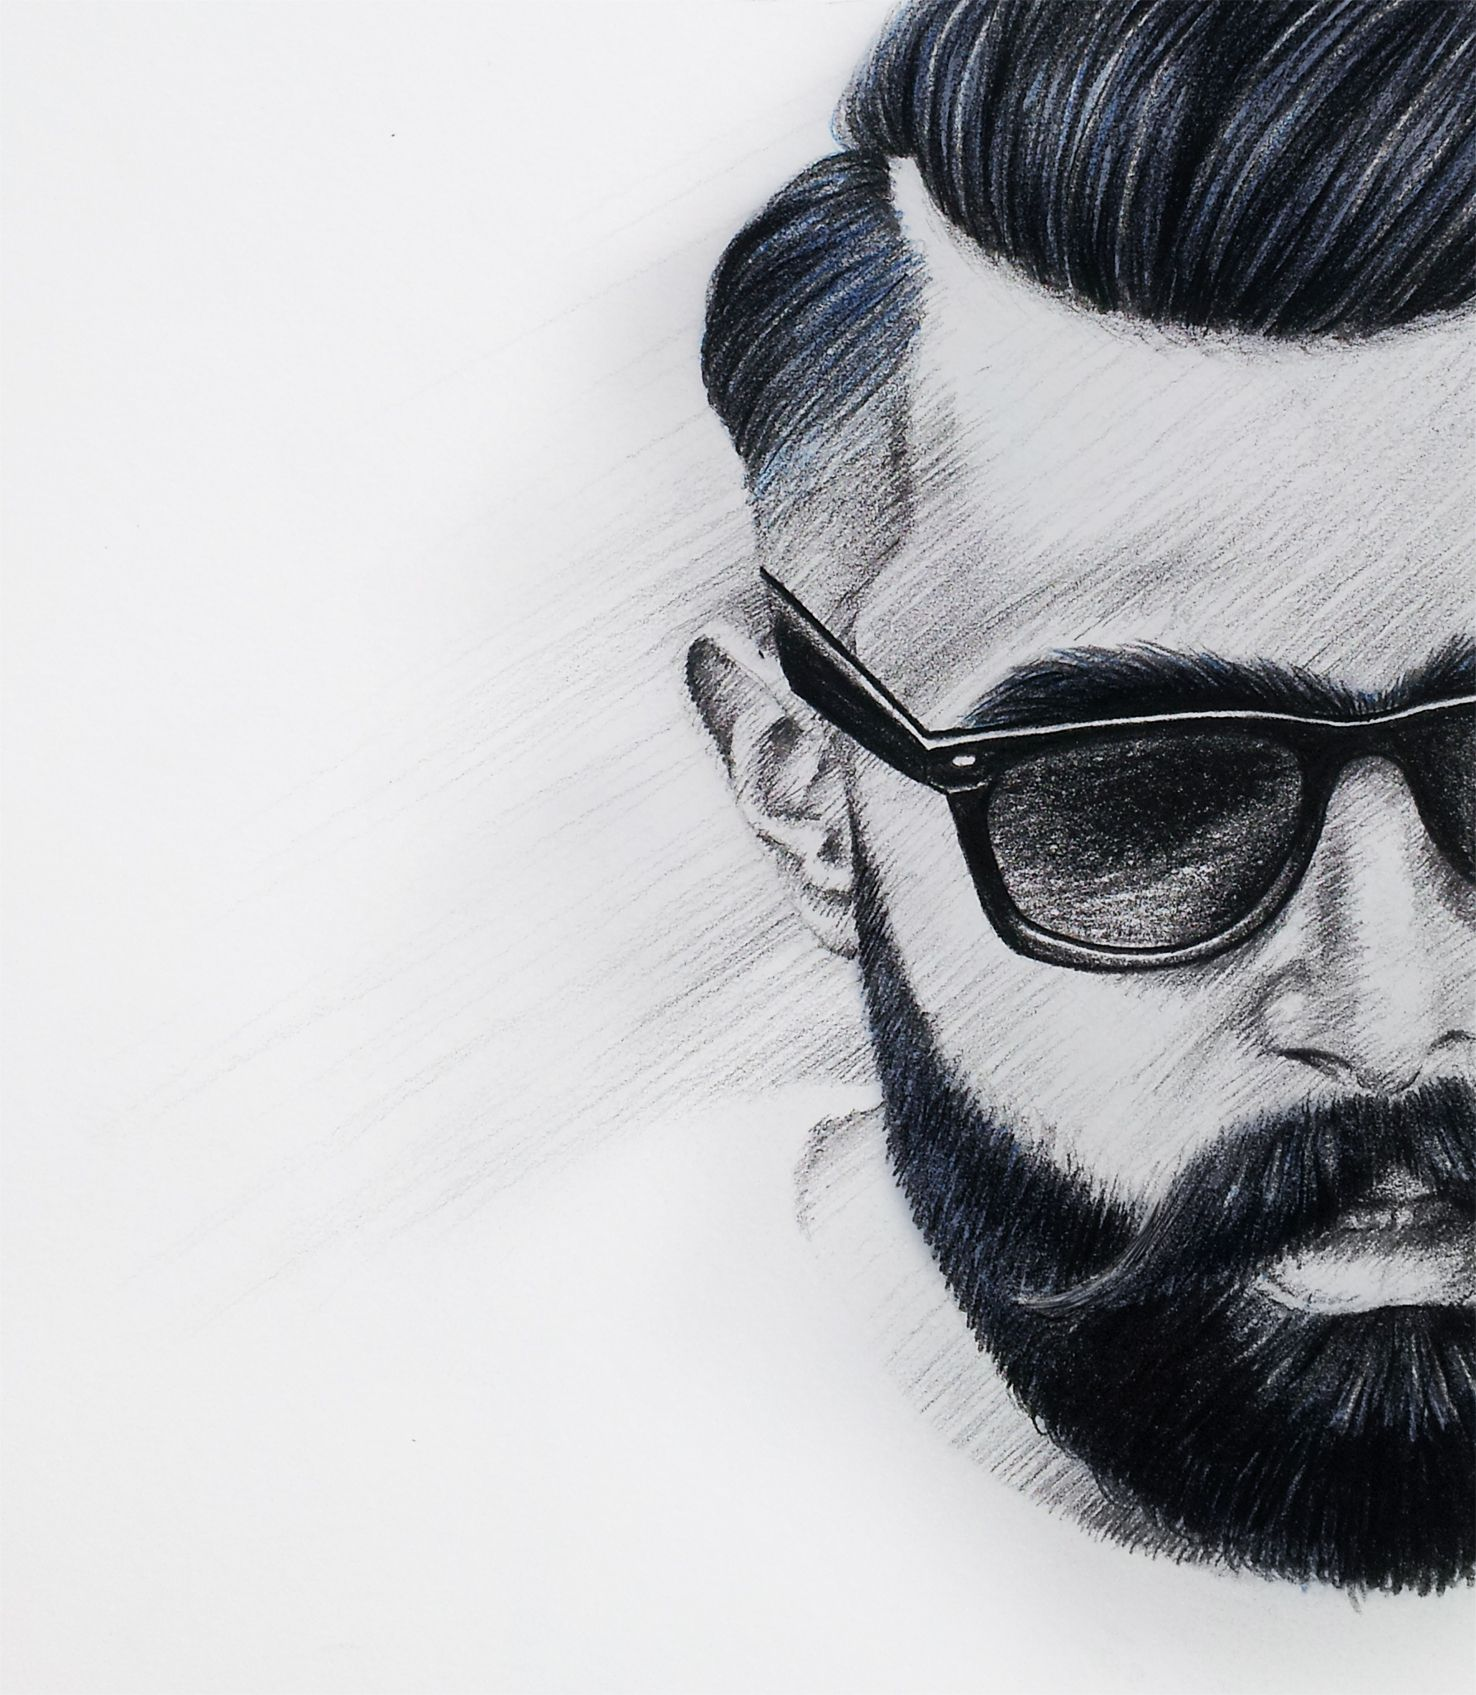 Drawing Man With Beard Black White Blue Www Xeniagesthuese